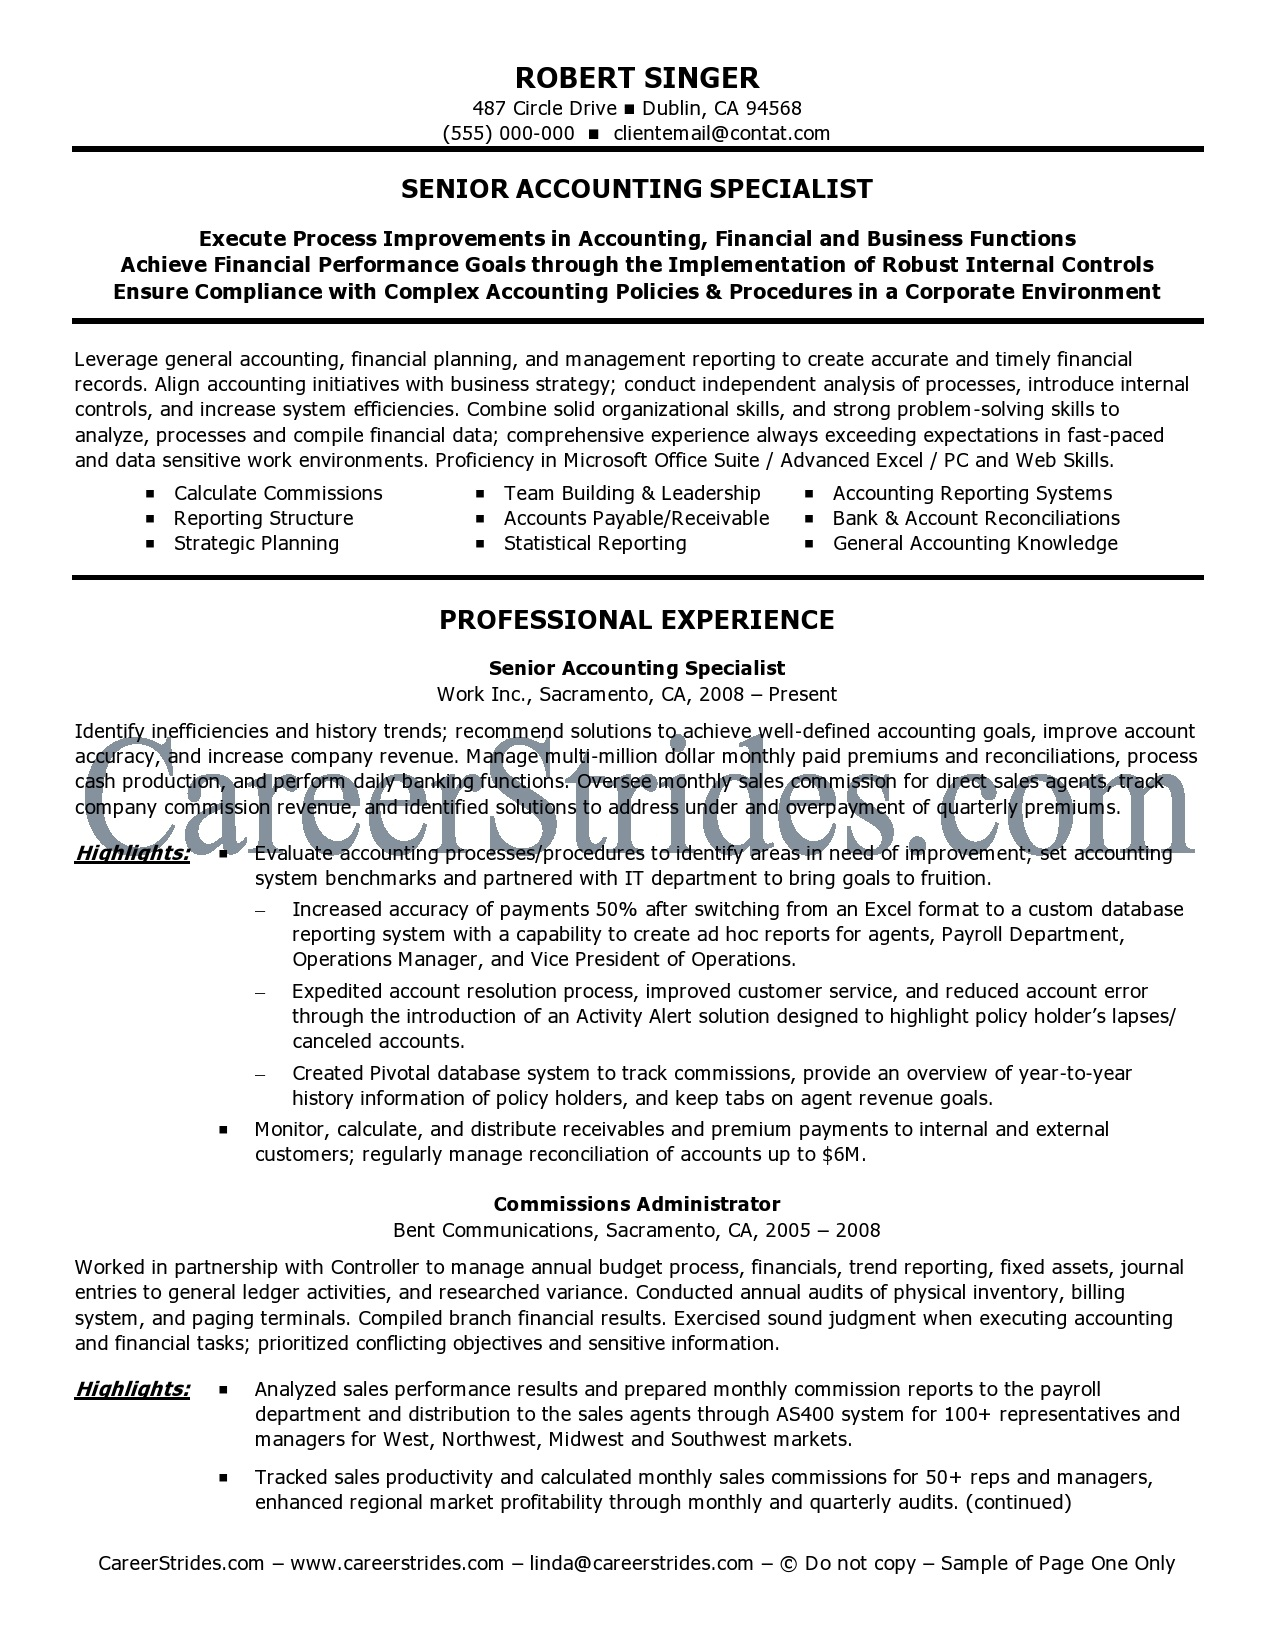 cpa manager resume sample cover letter resume samples cpa manager resume sample accounting manager resume samples best sample resume review resume samples in a